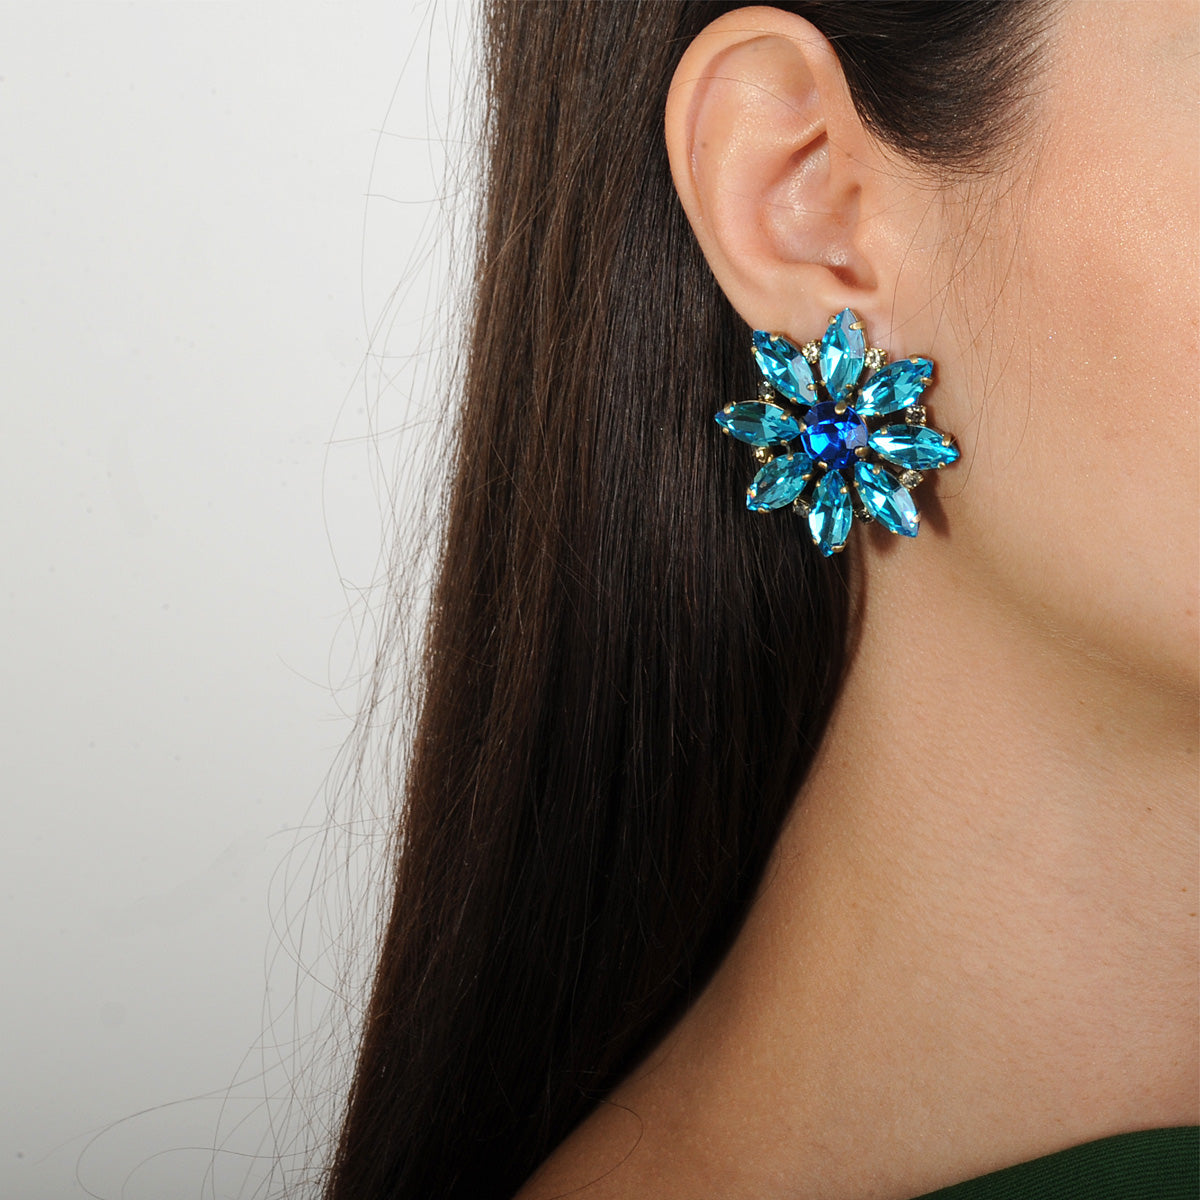 clip rosette earrings with aqua marine crystals katerina psoma